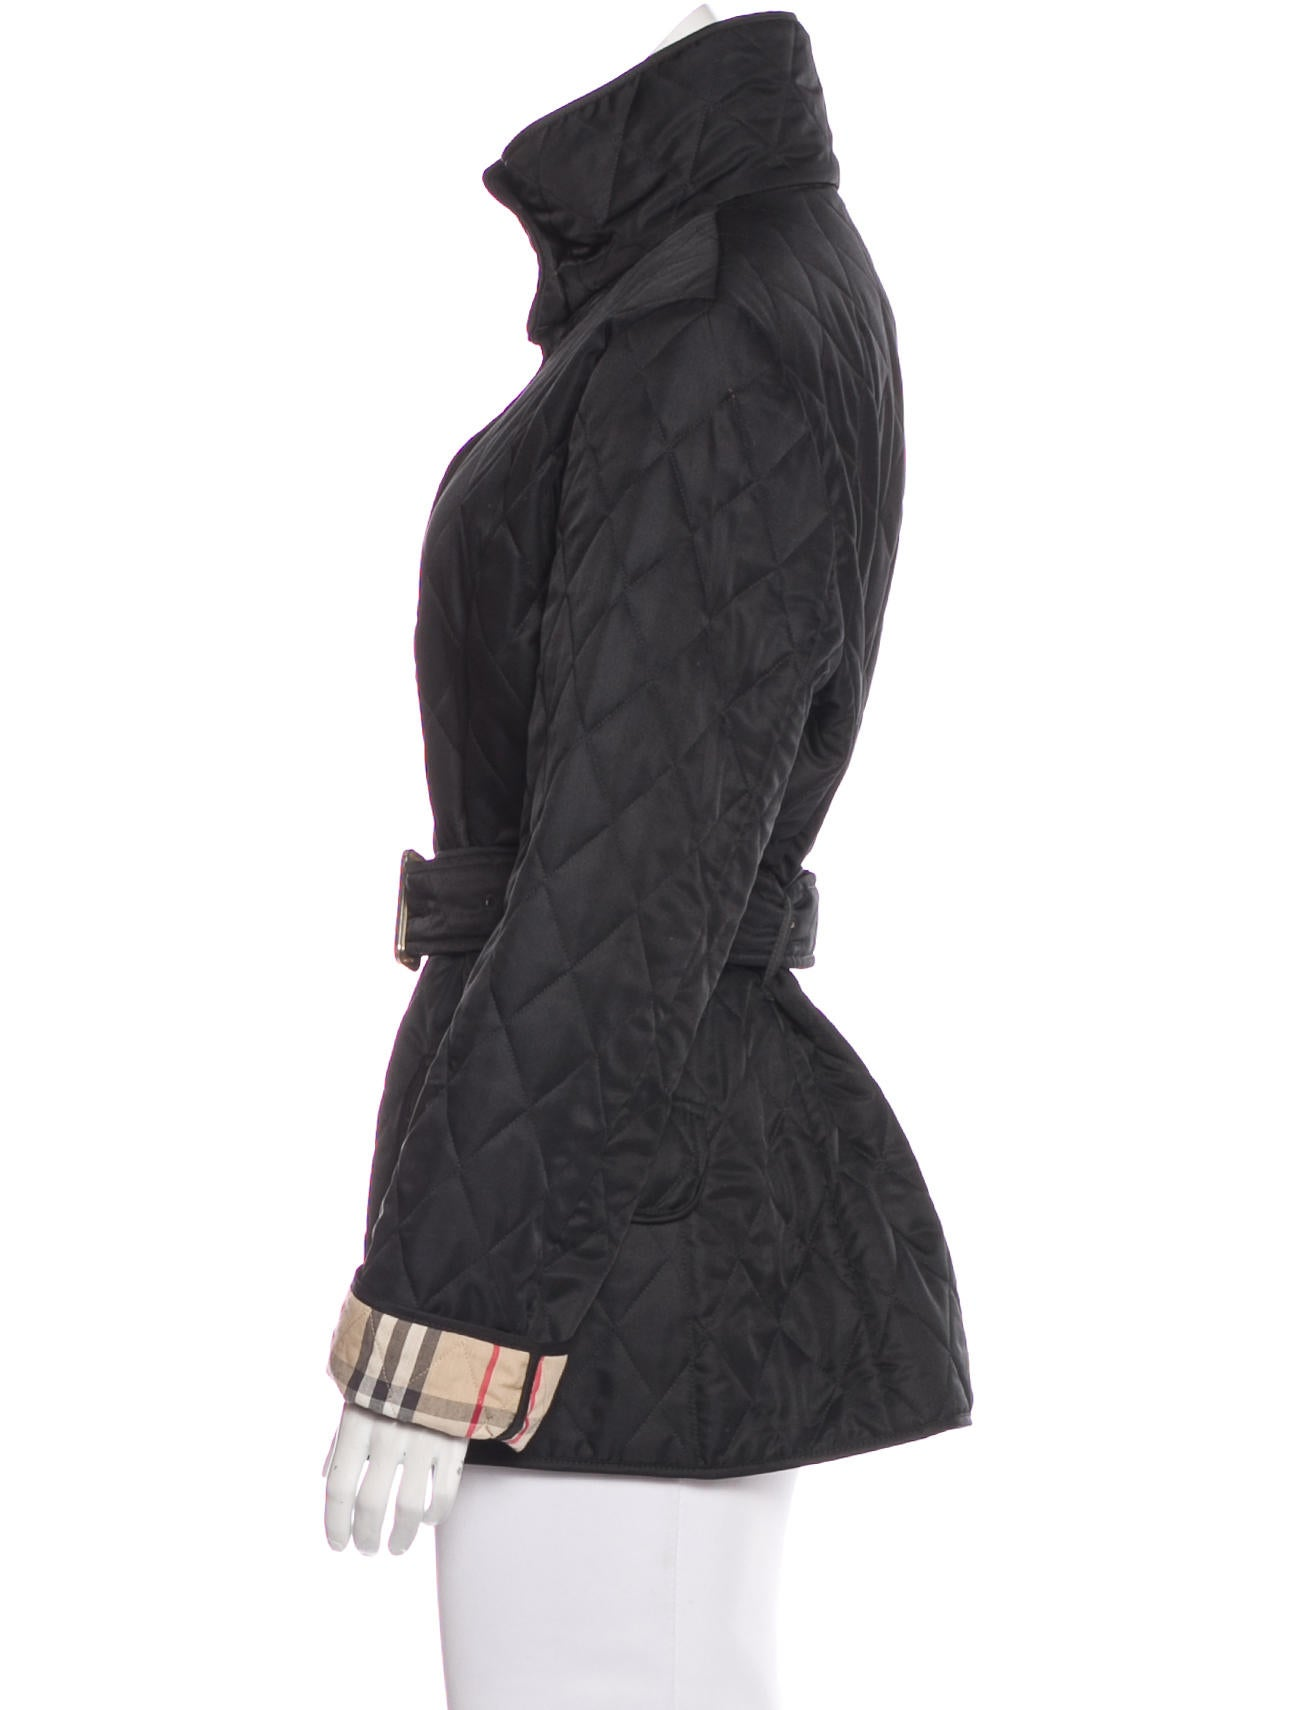 Burberry Short Quilted Jacket - Clothing